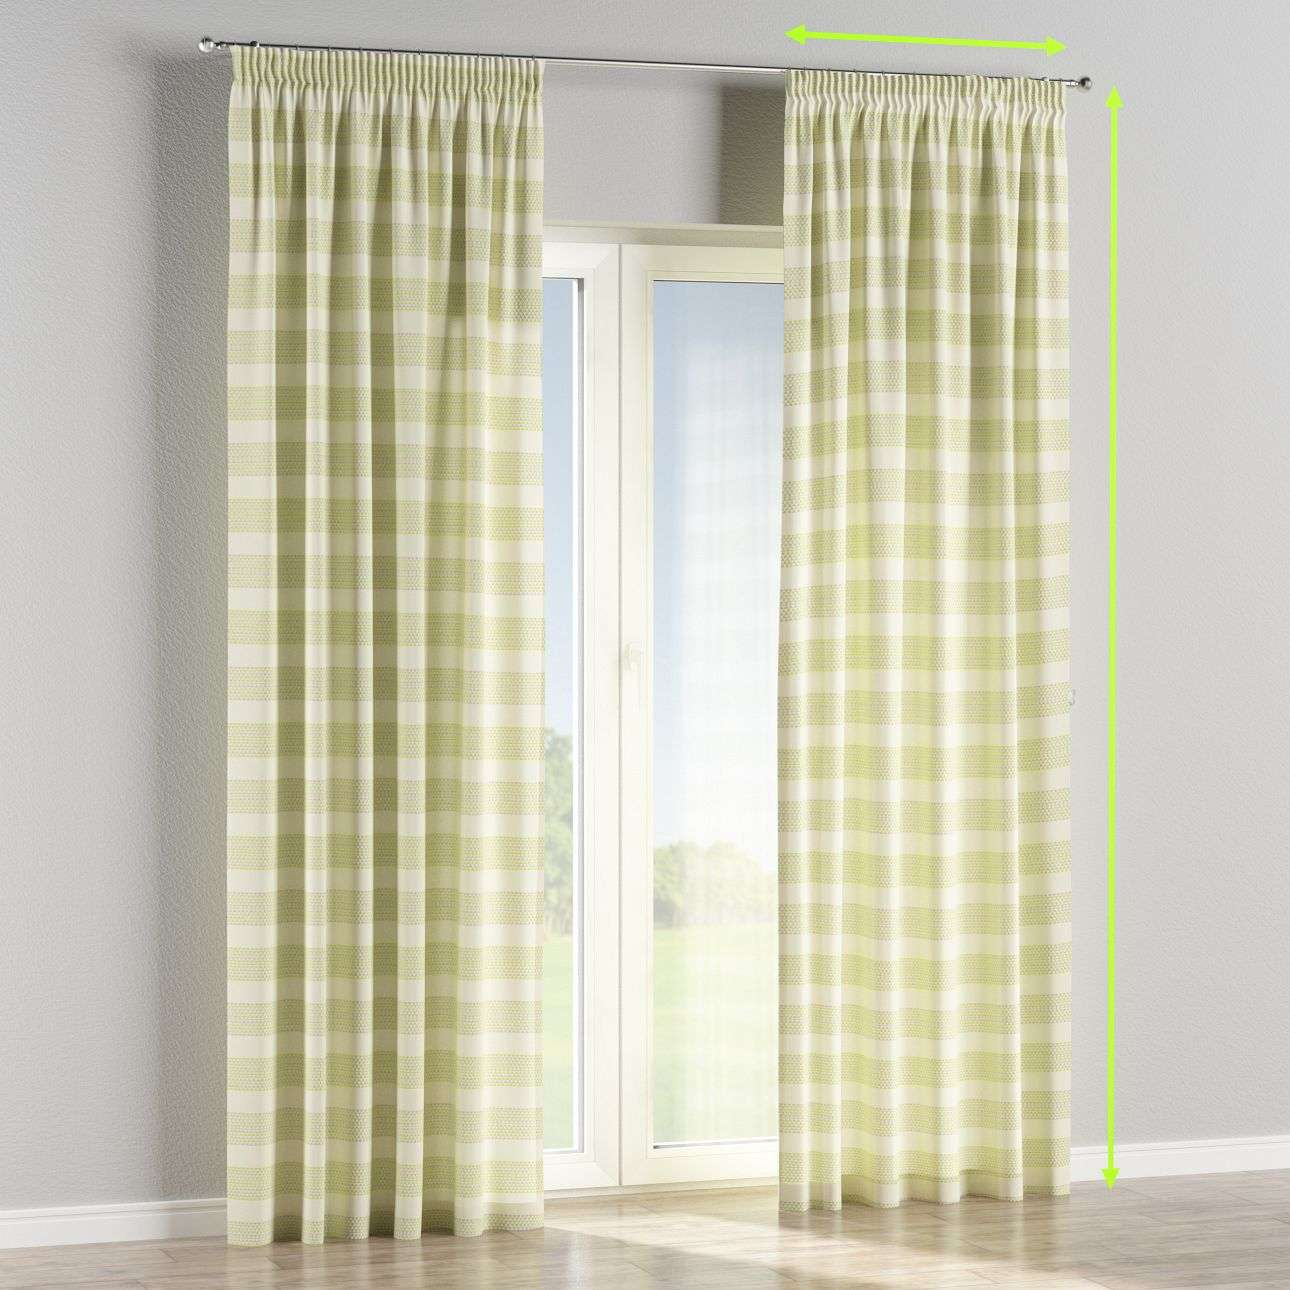 Pencil pleat curtains in collection Rustica, fabric: 140-35